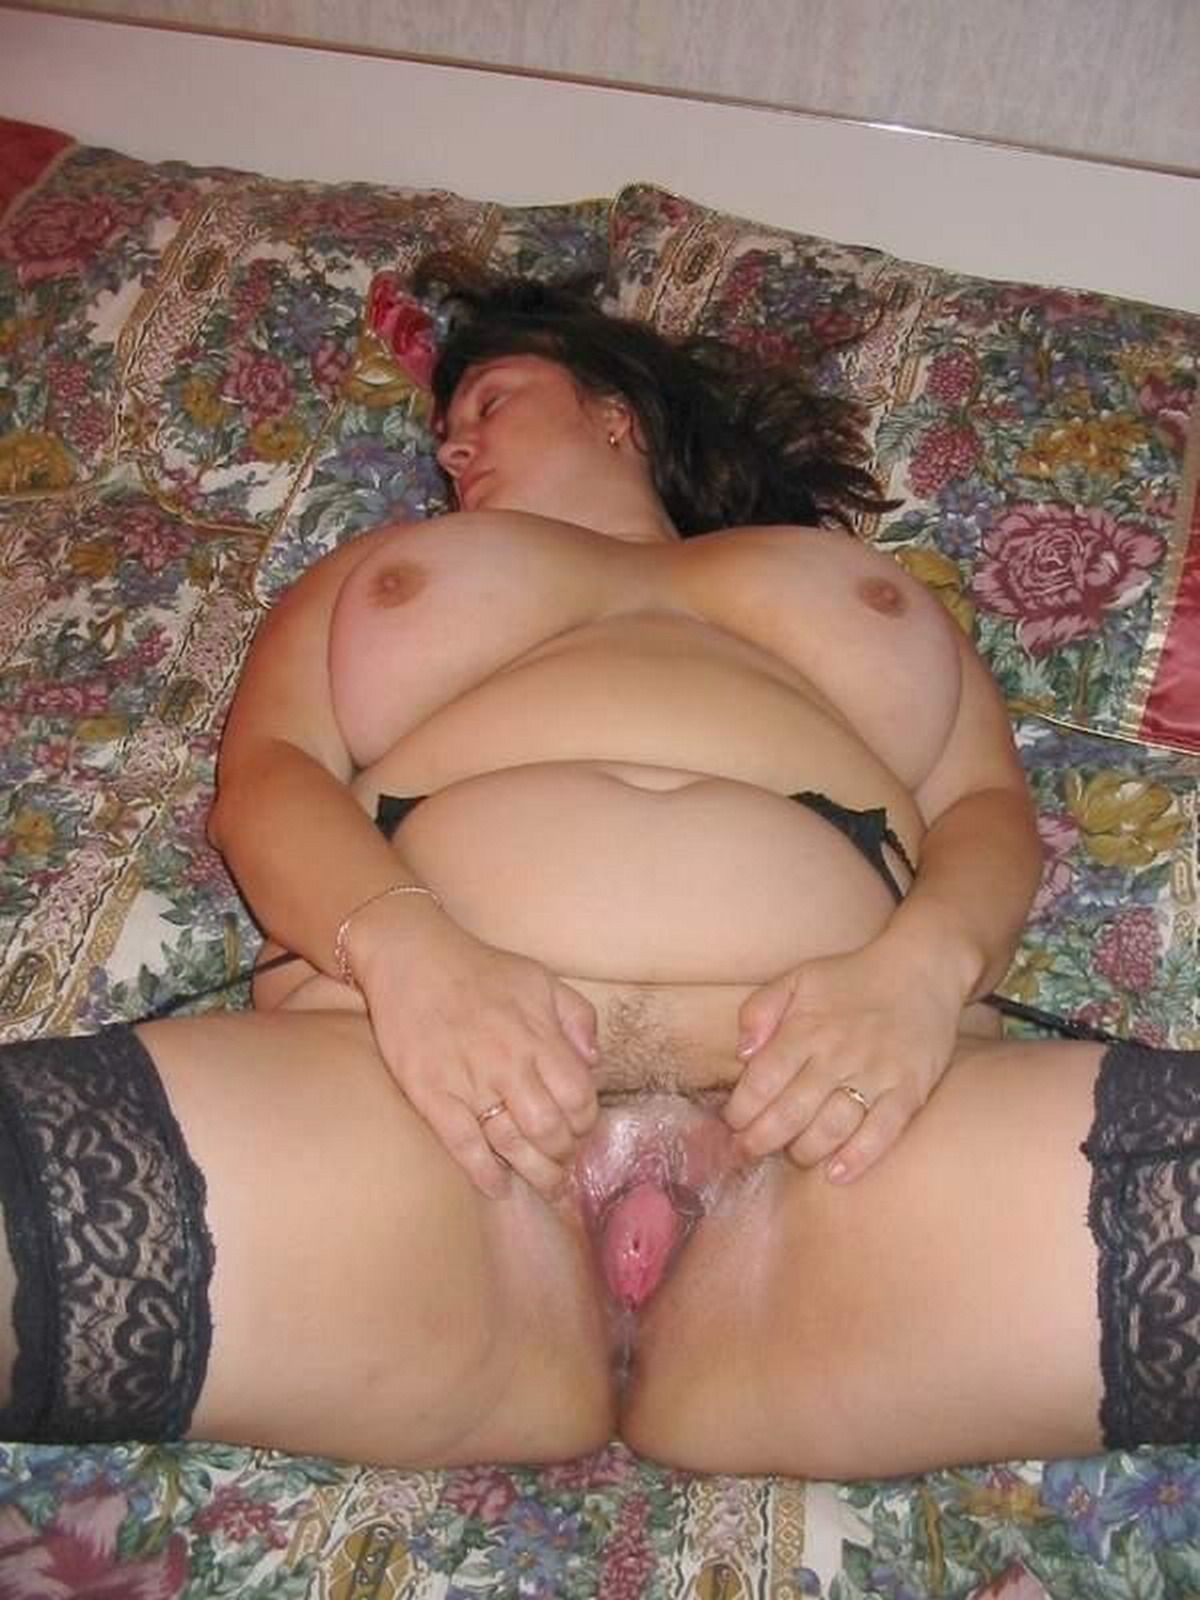 There's Chubby babe fuck vid